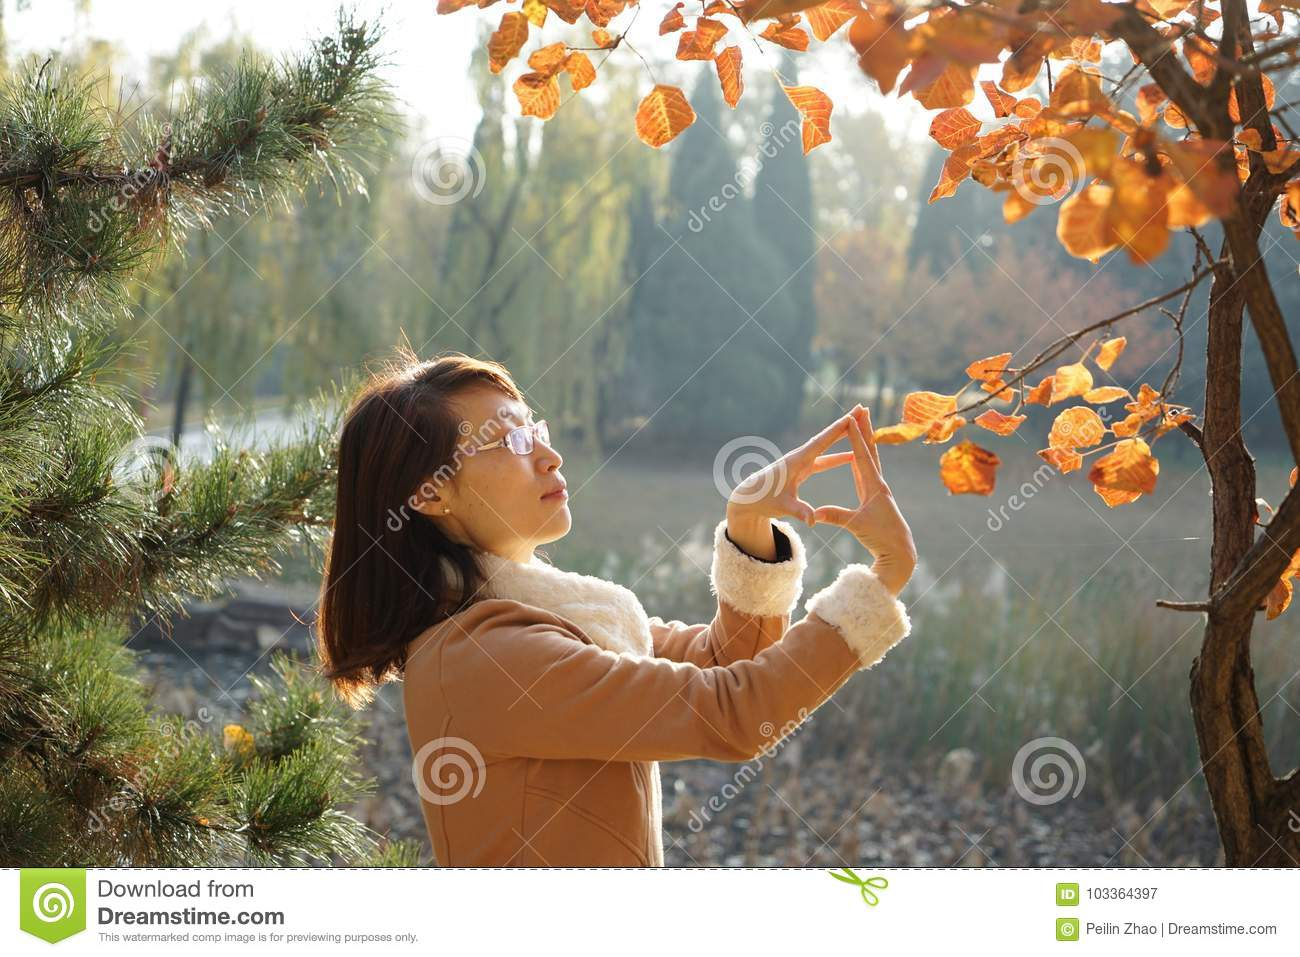 A woman and Ginko tree in fall